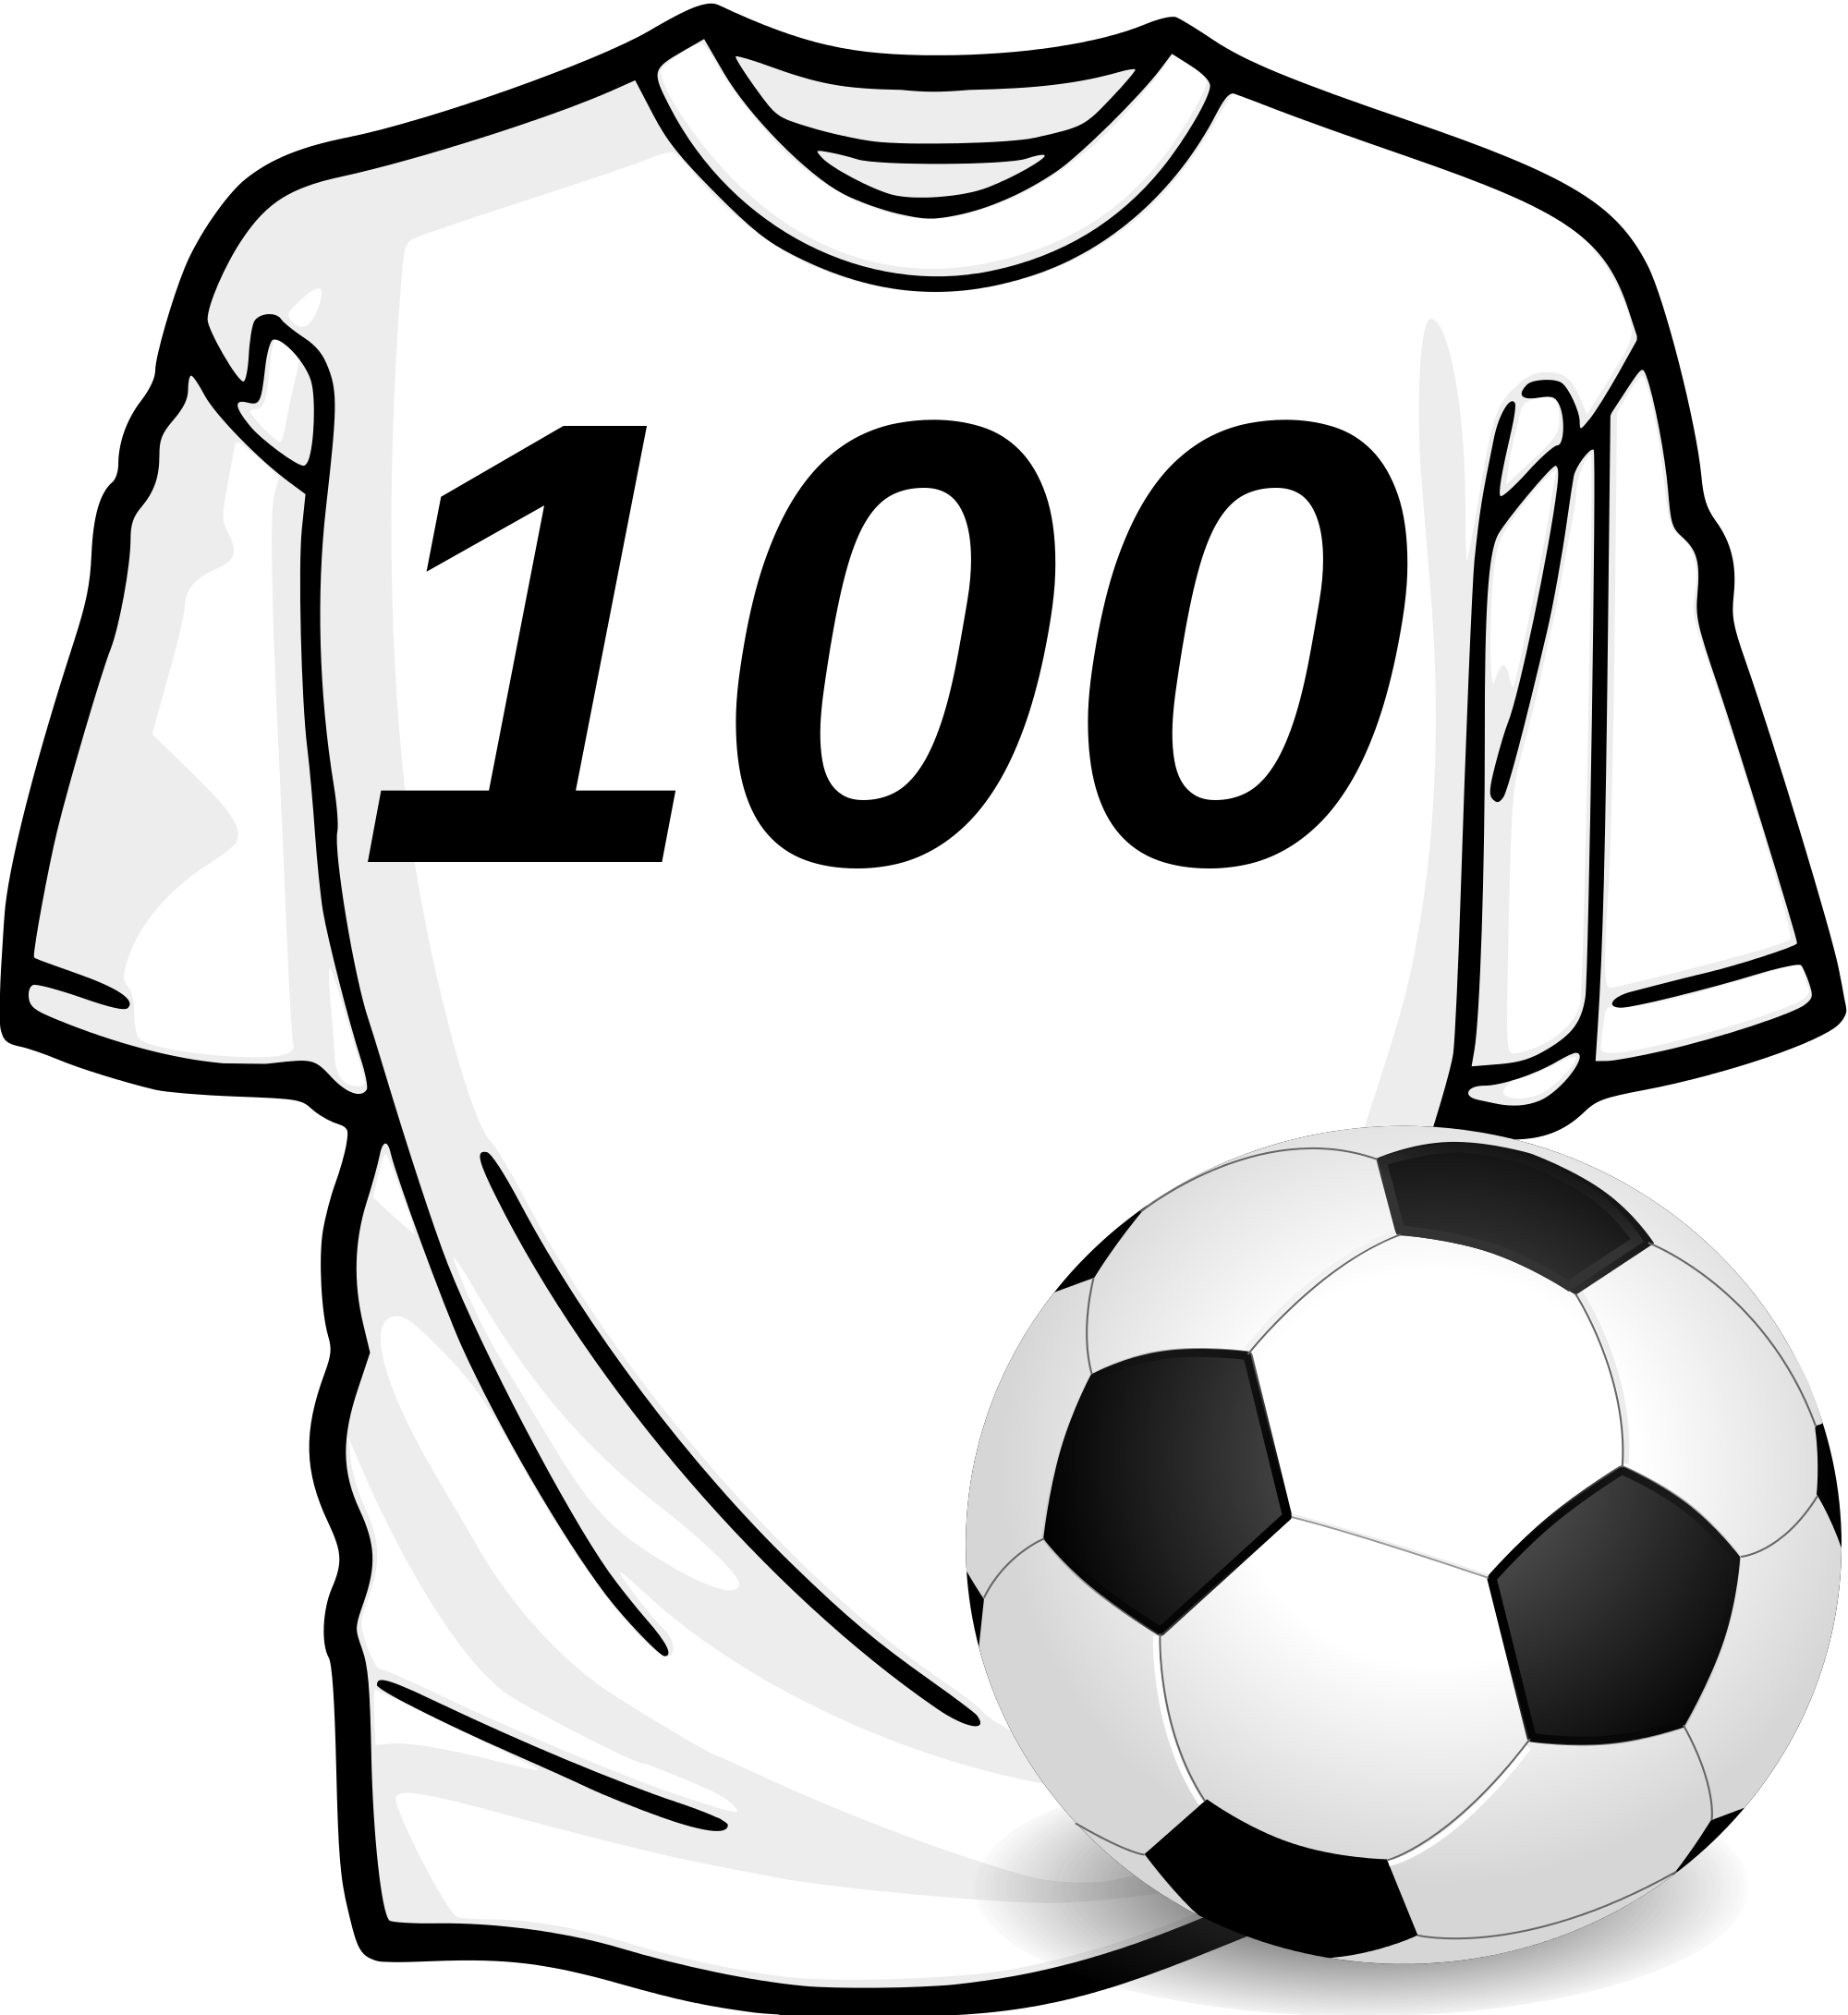 File:Football-Players-100-match.svg - Wikimedia Commons image black and white library